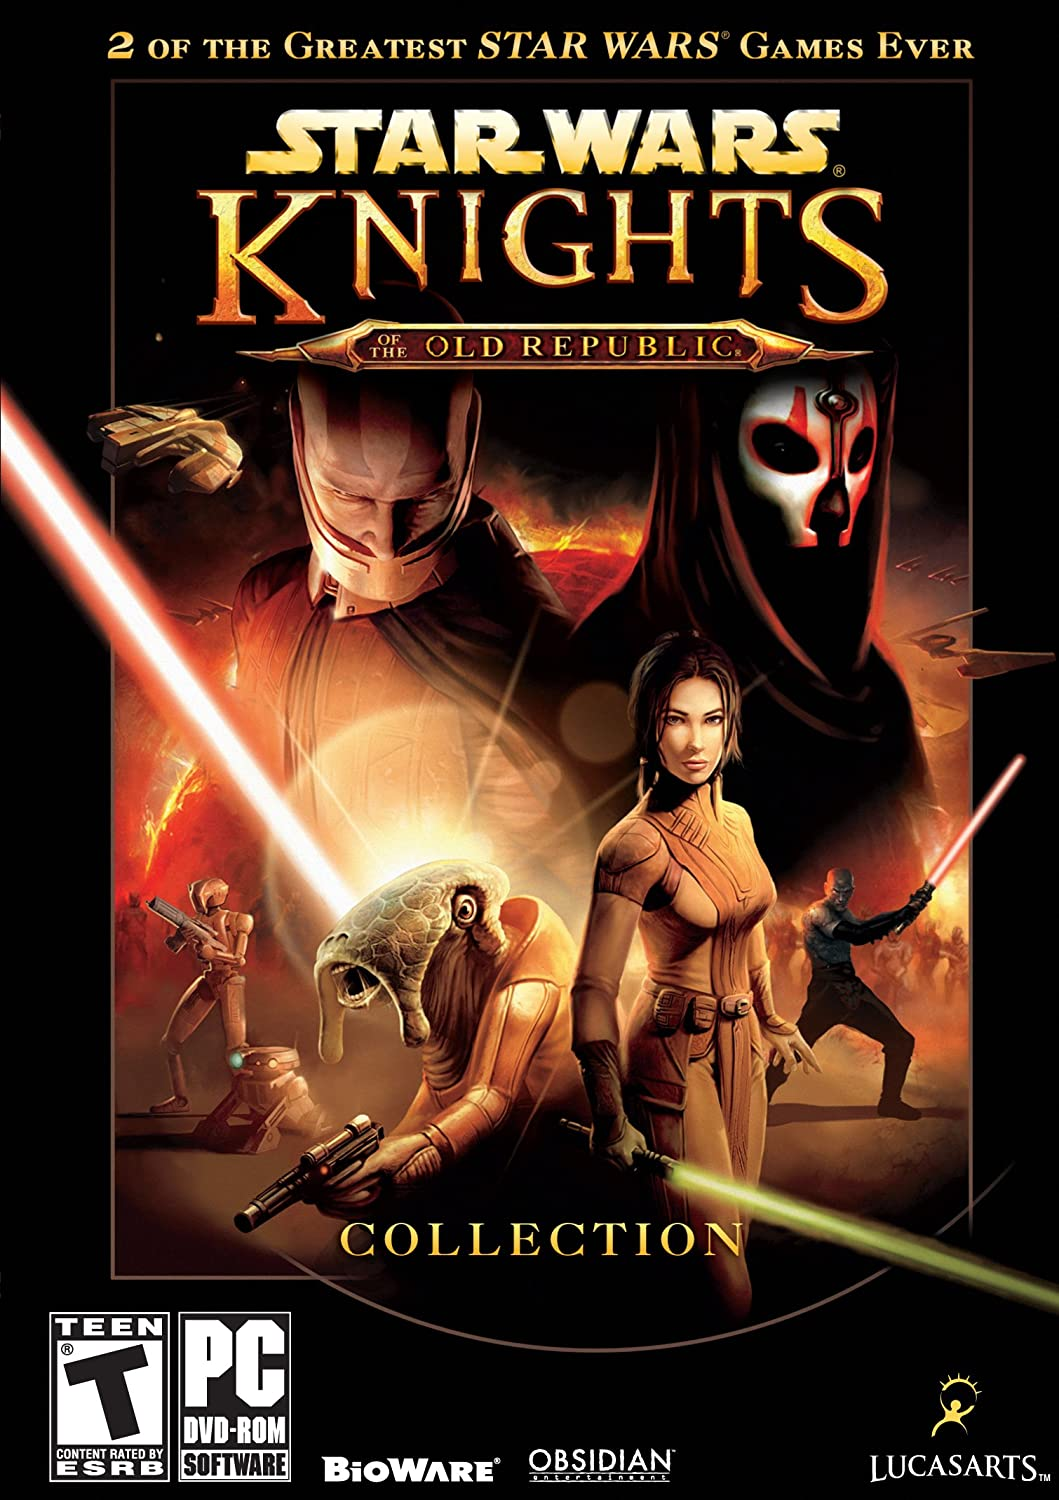 Star Wars: Knights of the Old Republic collection cover art.